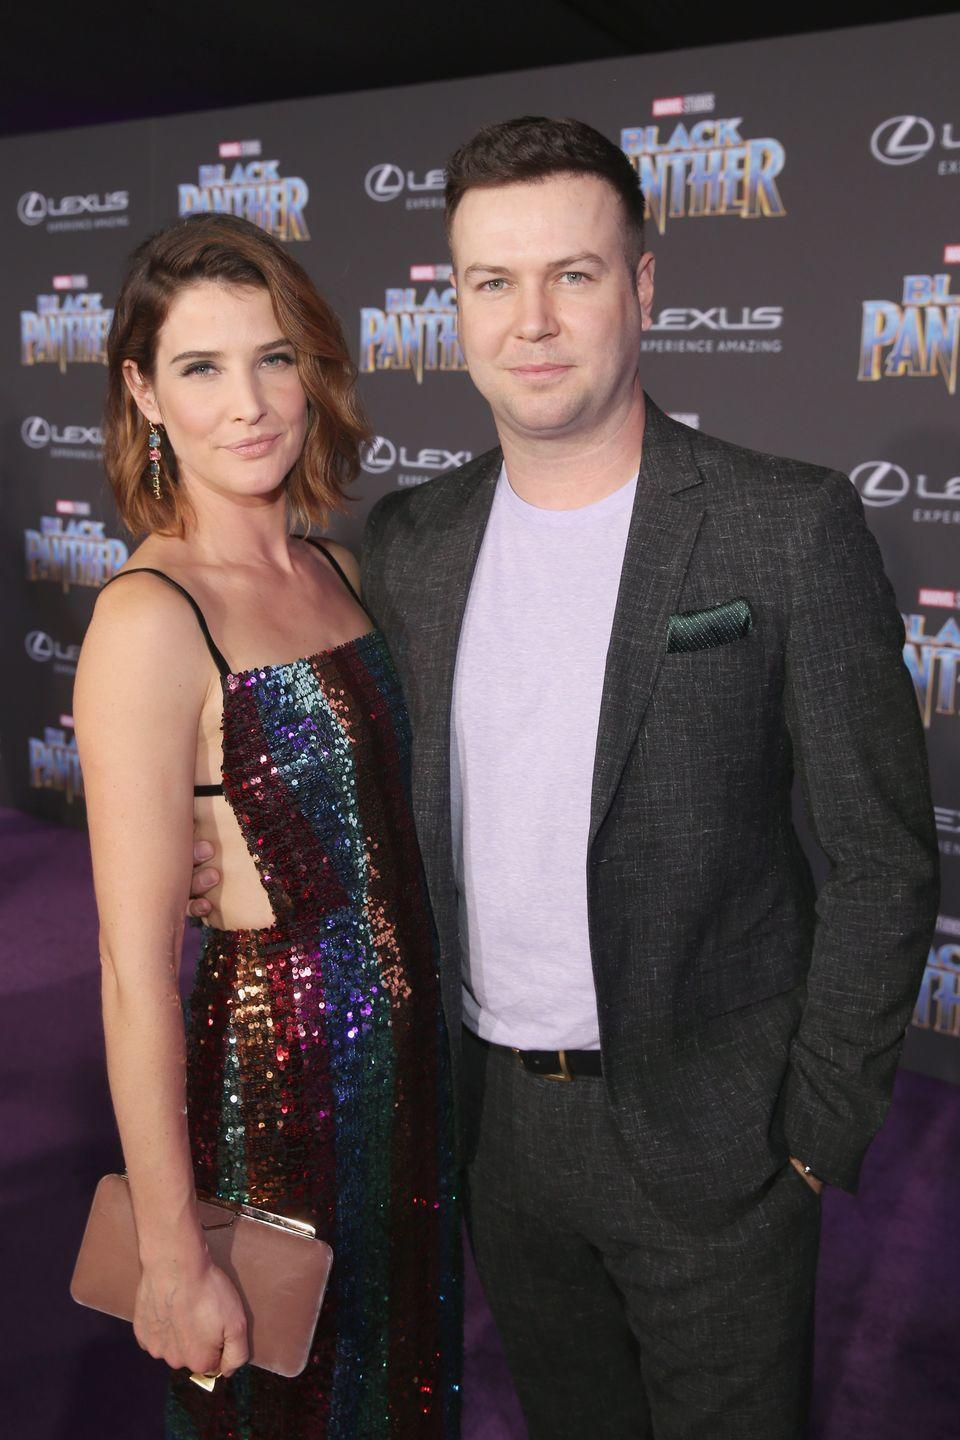 <p>Cobie Smulders' hit show <em>How I Met Your Mother </em>was filled with appearances from some of the co-stars' partners and Smulders' then-boyfriend Killam played Gary Blauman. The couple got married in 2012 and have two daughters.</p>